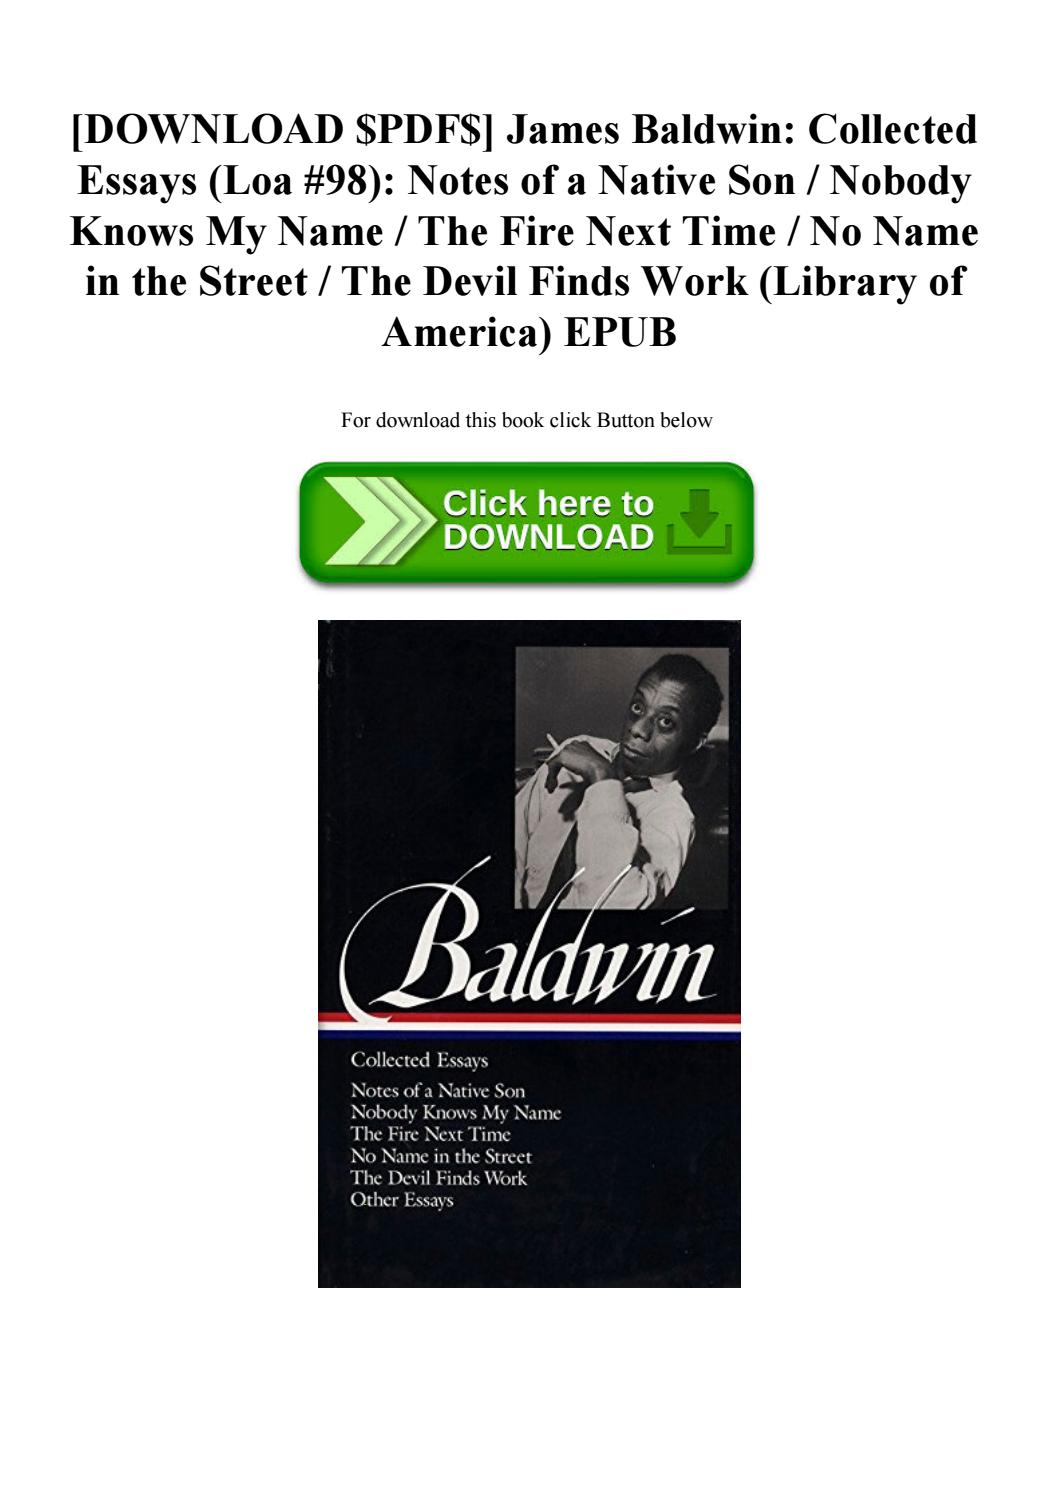 006 Page 1 James Baldwin Collected Essays Essay Wondrous Table Of Contents Ebook Google Books Full